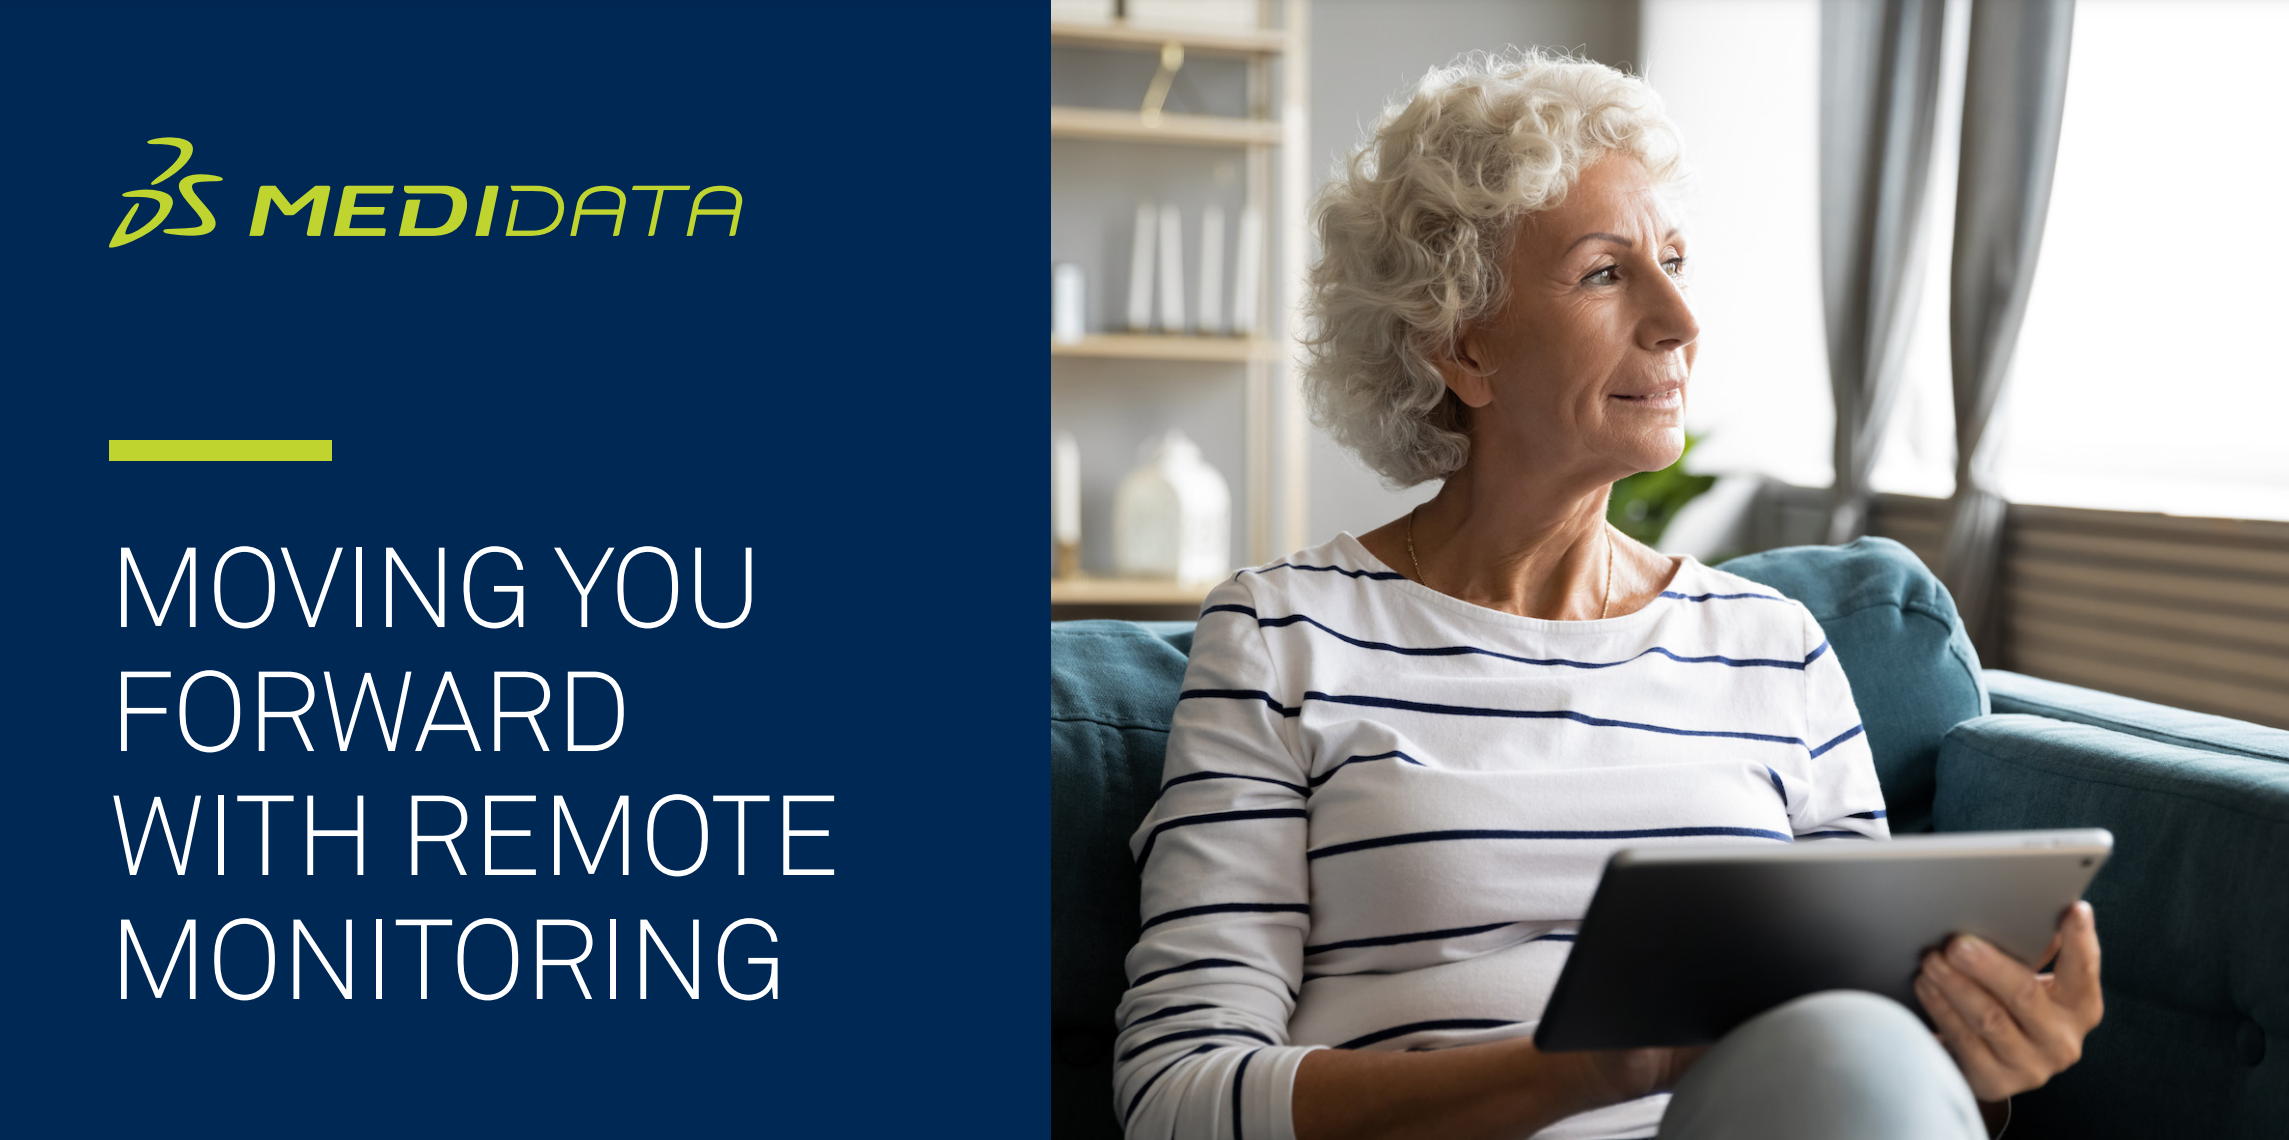 Moving You Forward With Remote Monitoring